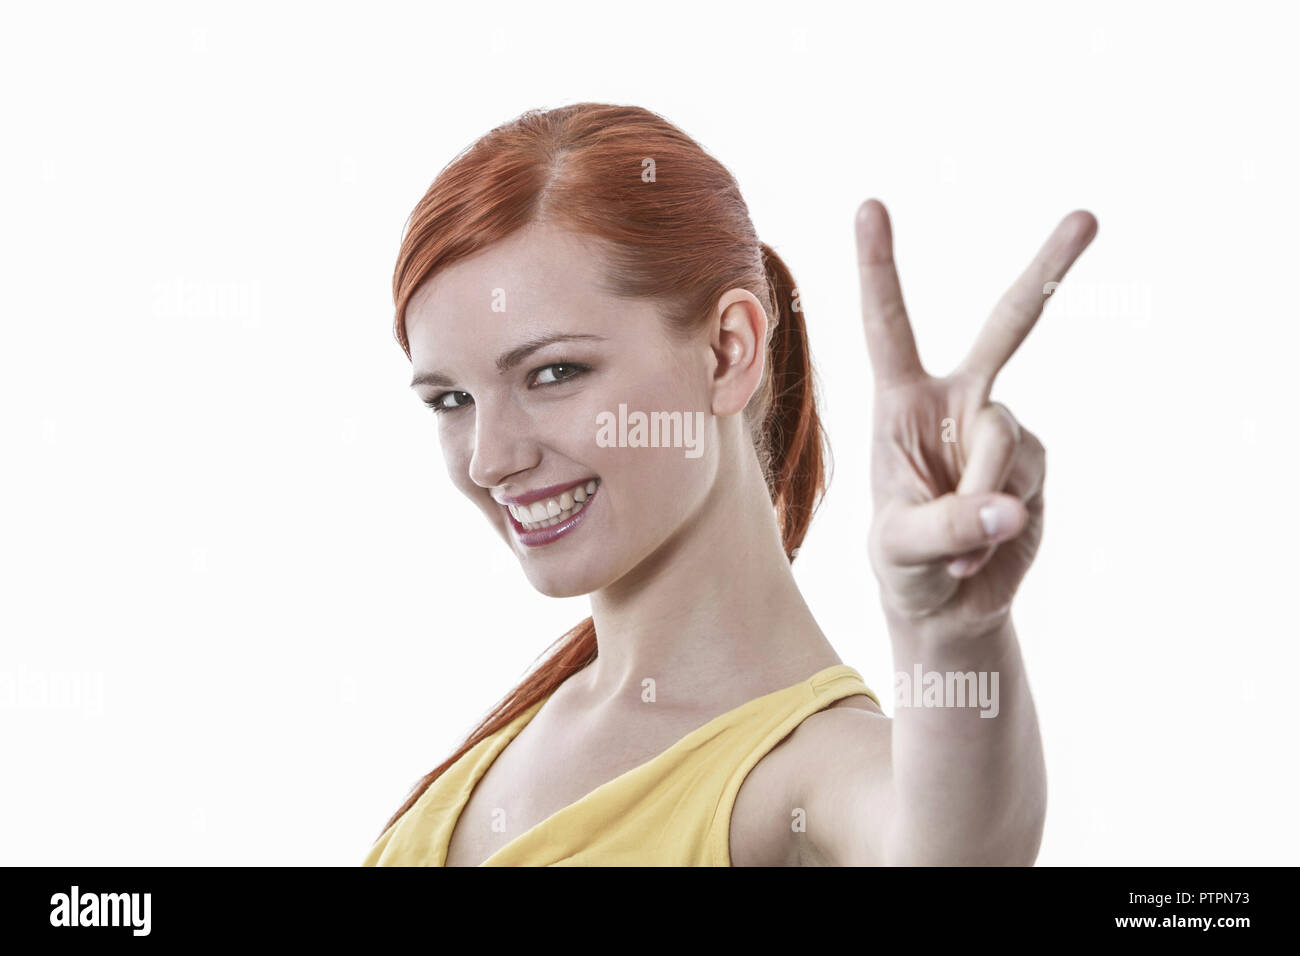 Junge rothaarige Frau zeigt Victory Zeichen, Young red-haired woman shows victory sign, attractive, beautiful, beauty, casual, caucasian, close, color - Stock Image